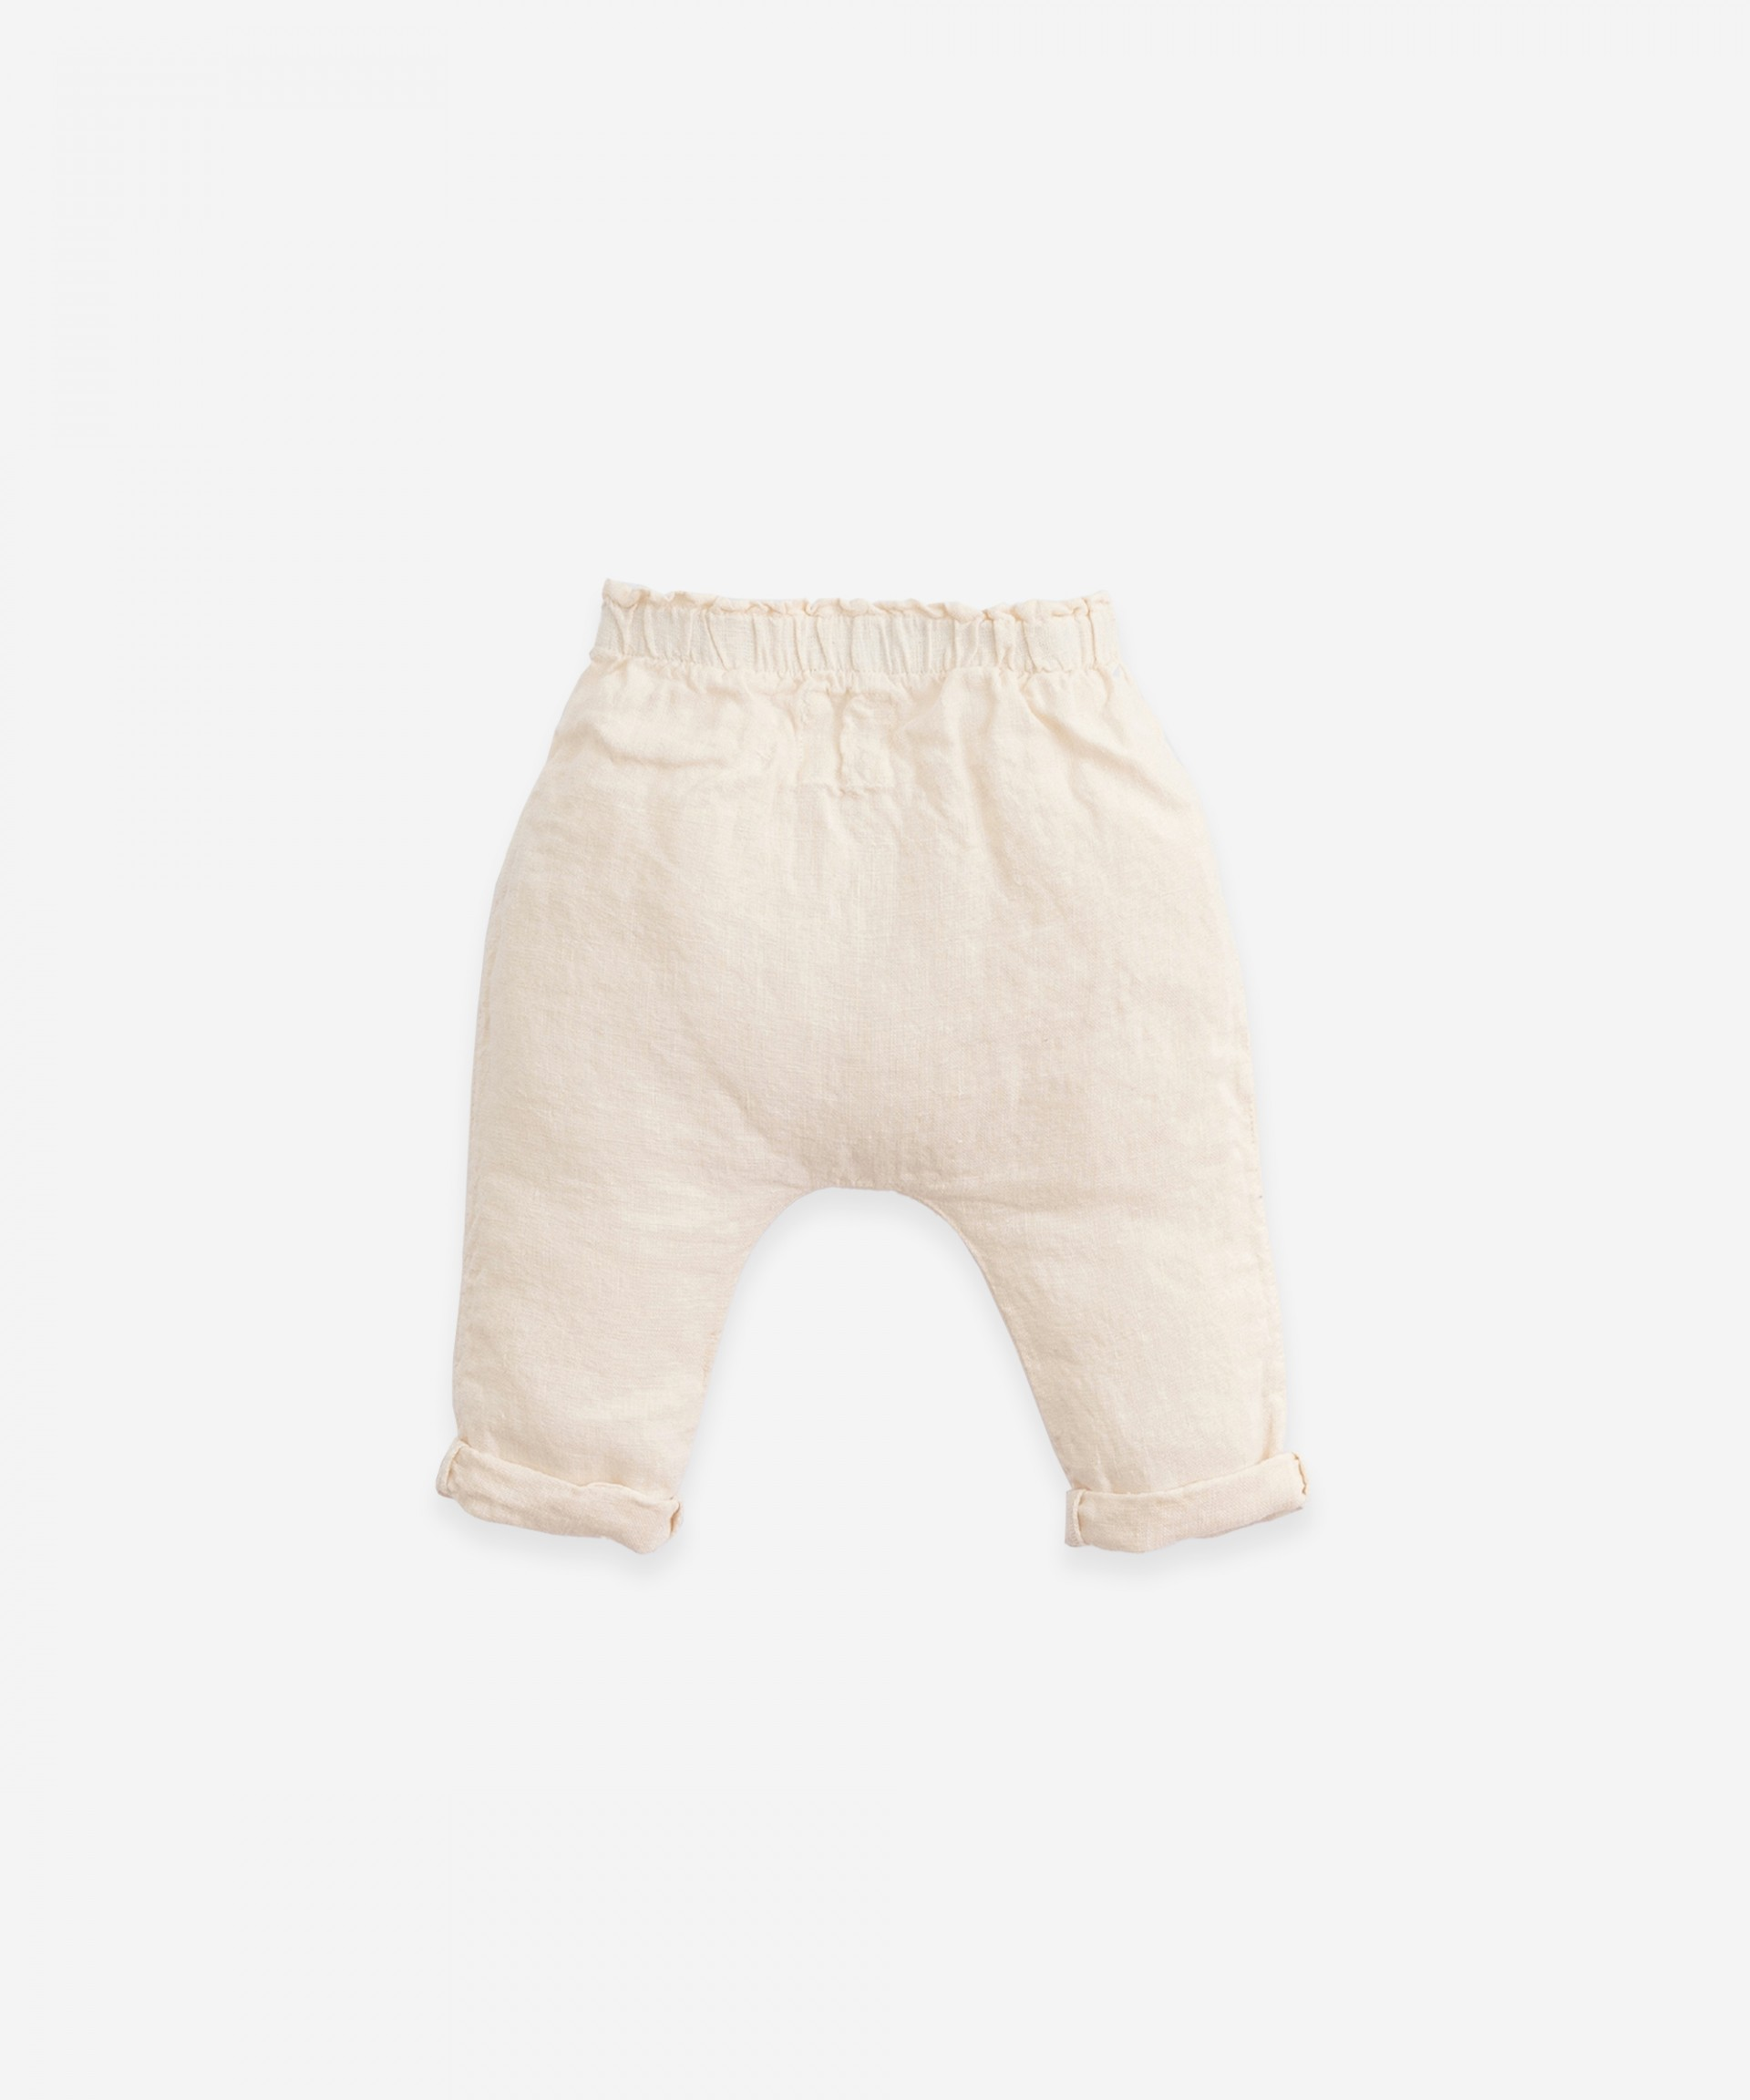 Linen trousers with elastic waist | Botany